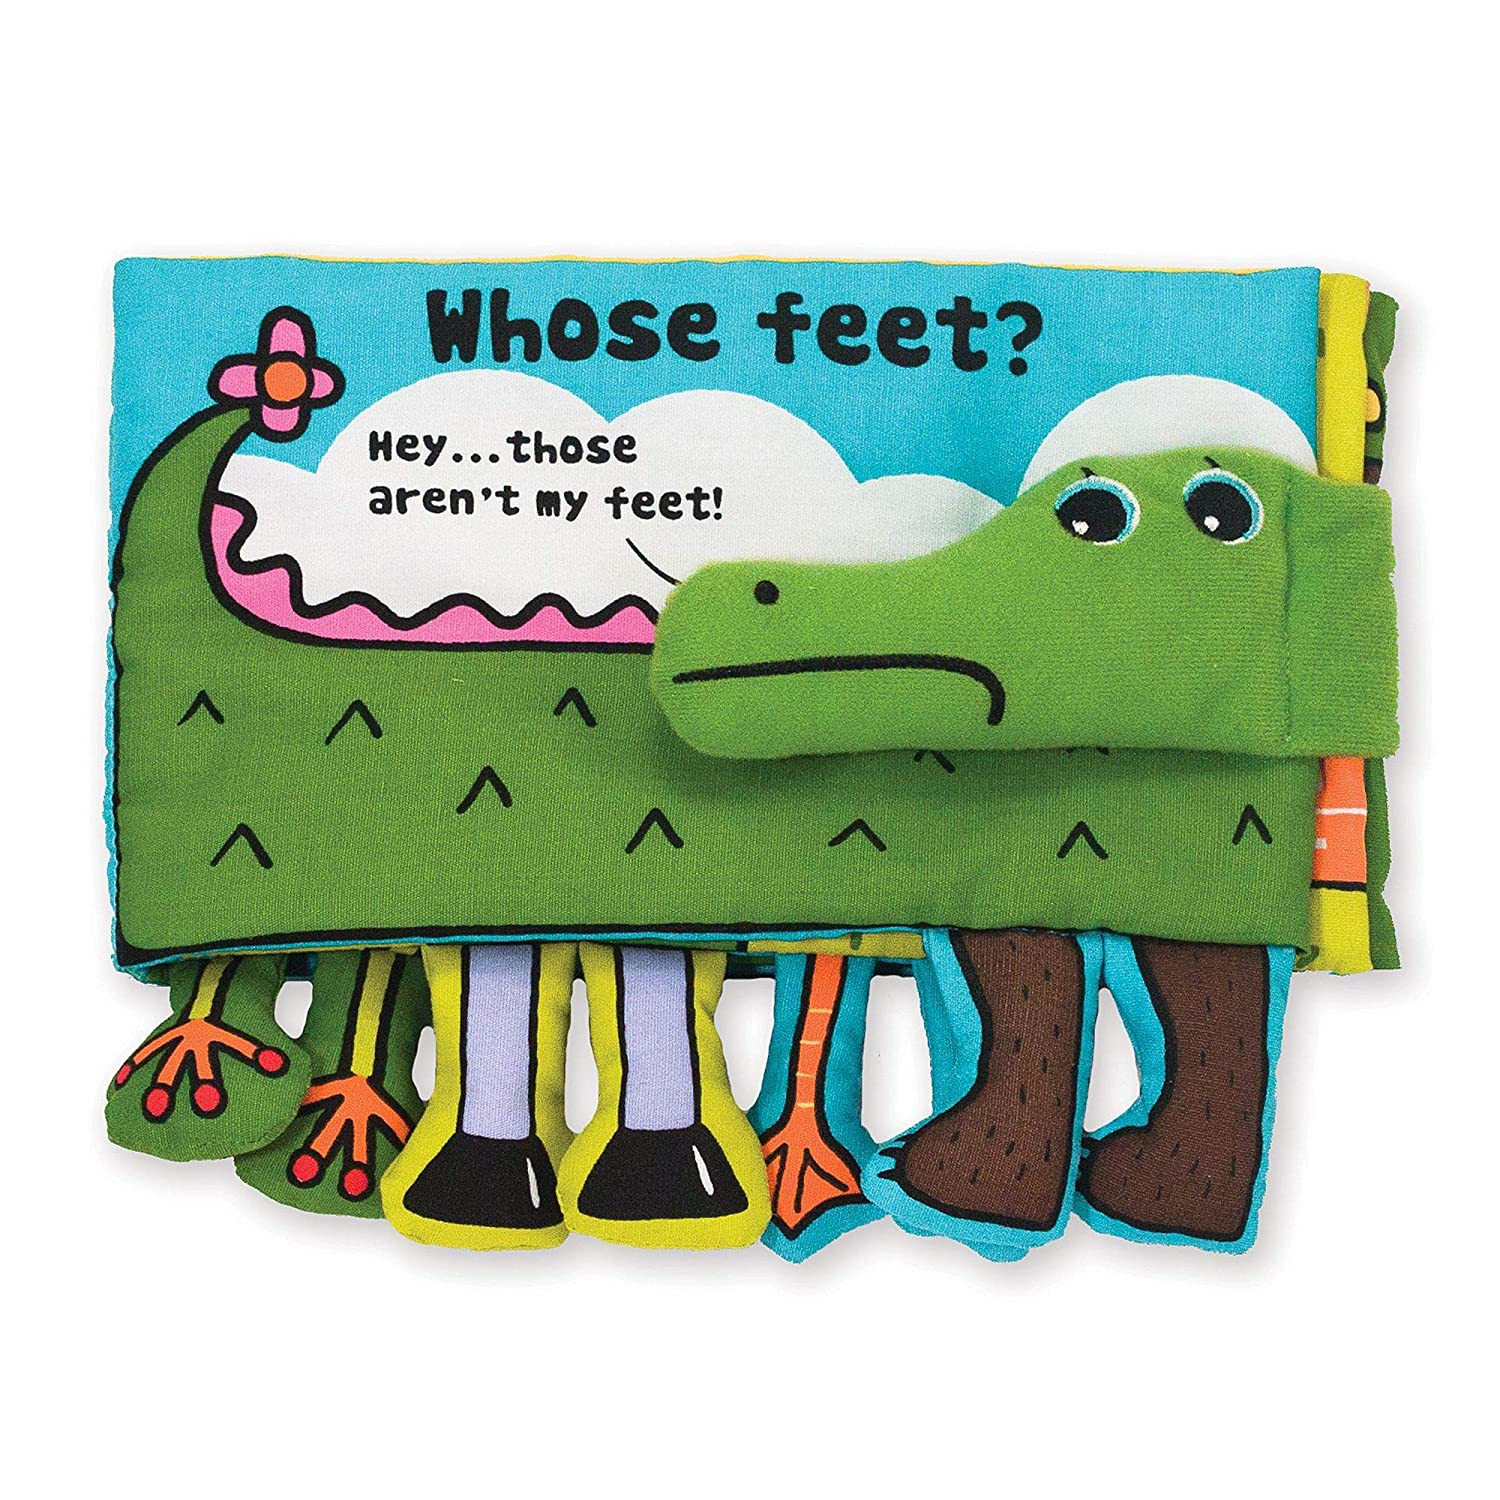 whose feet? melissa and doug soft book